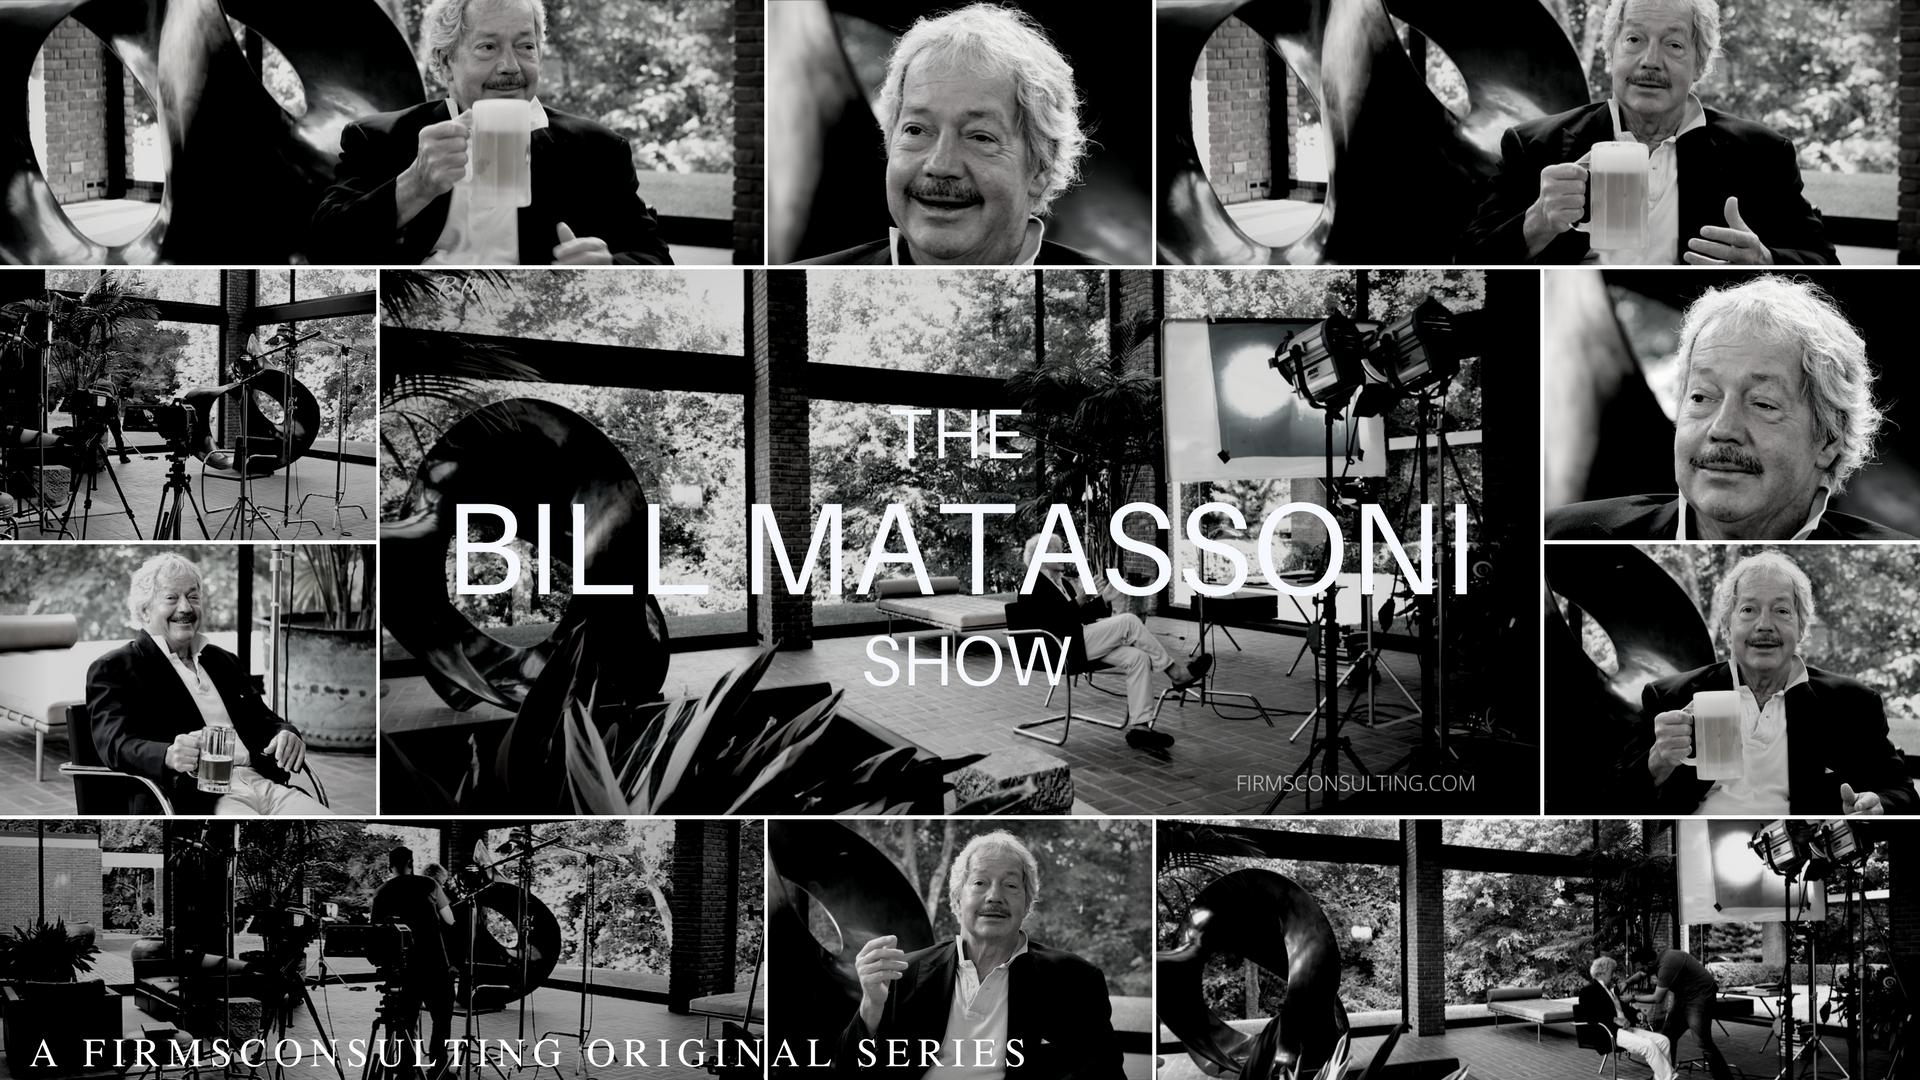 Poster for The Bill Matassoni Show